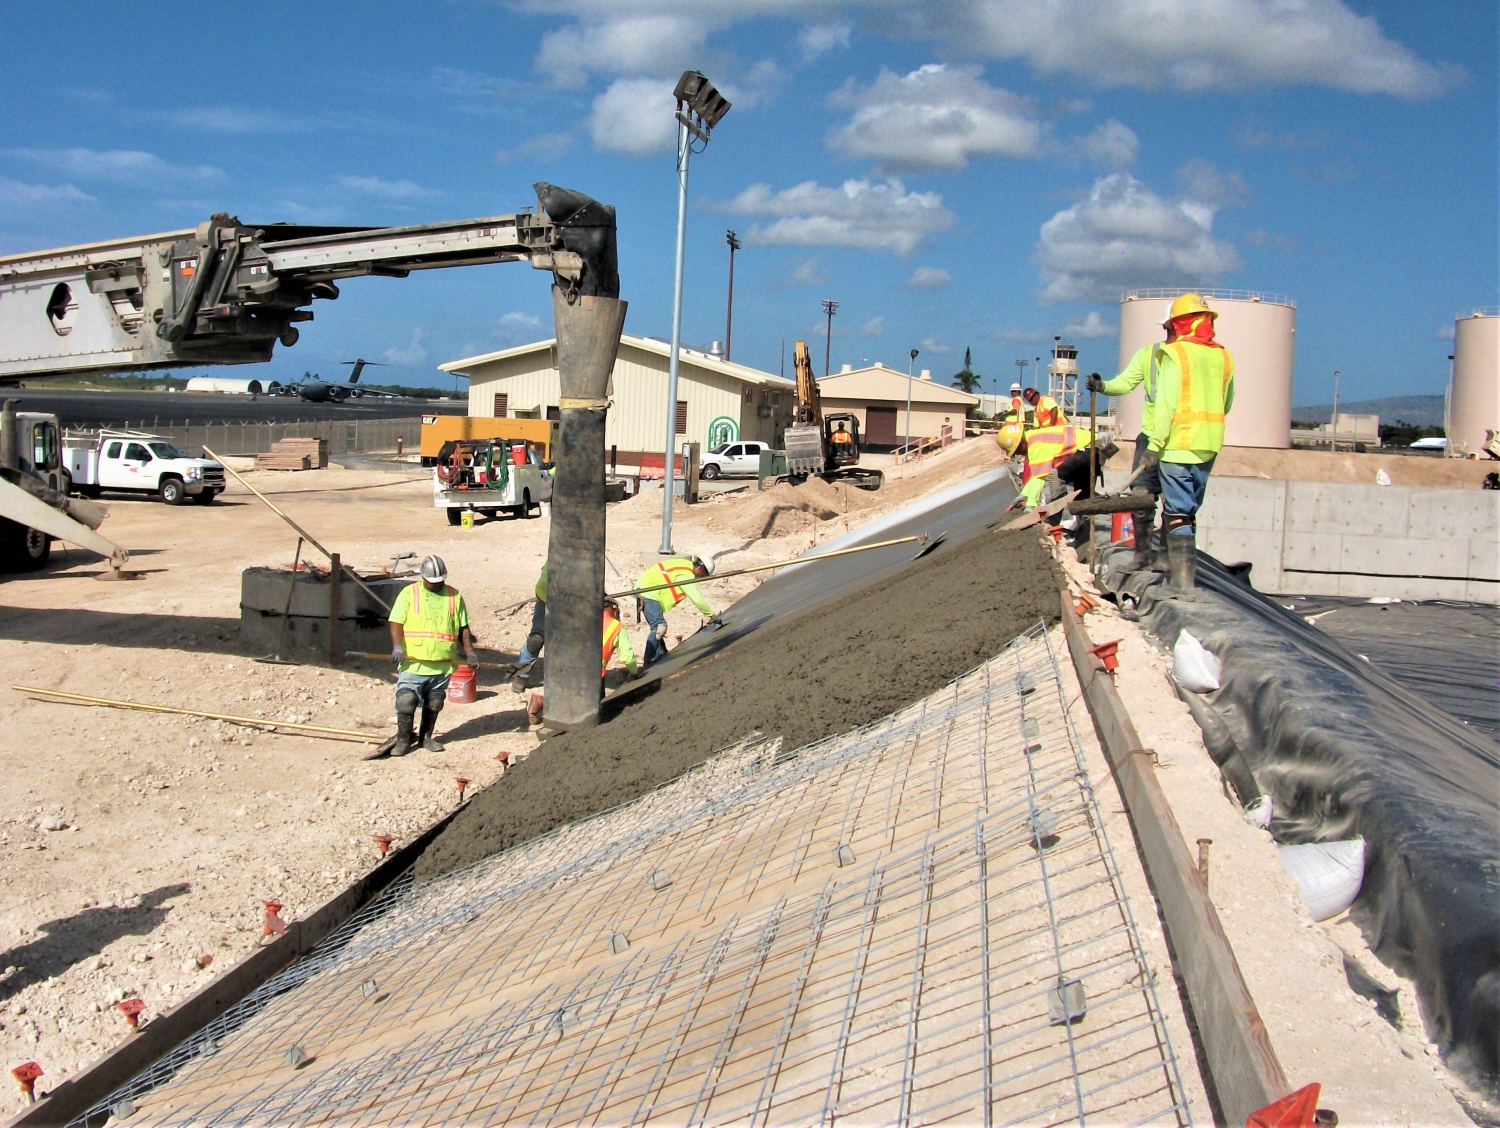 Pouring concrete for the fuel containment area